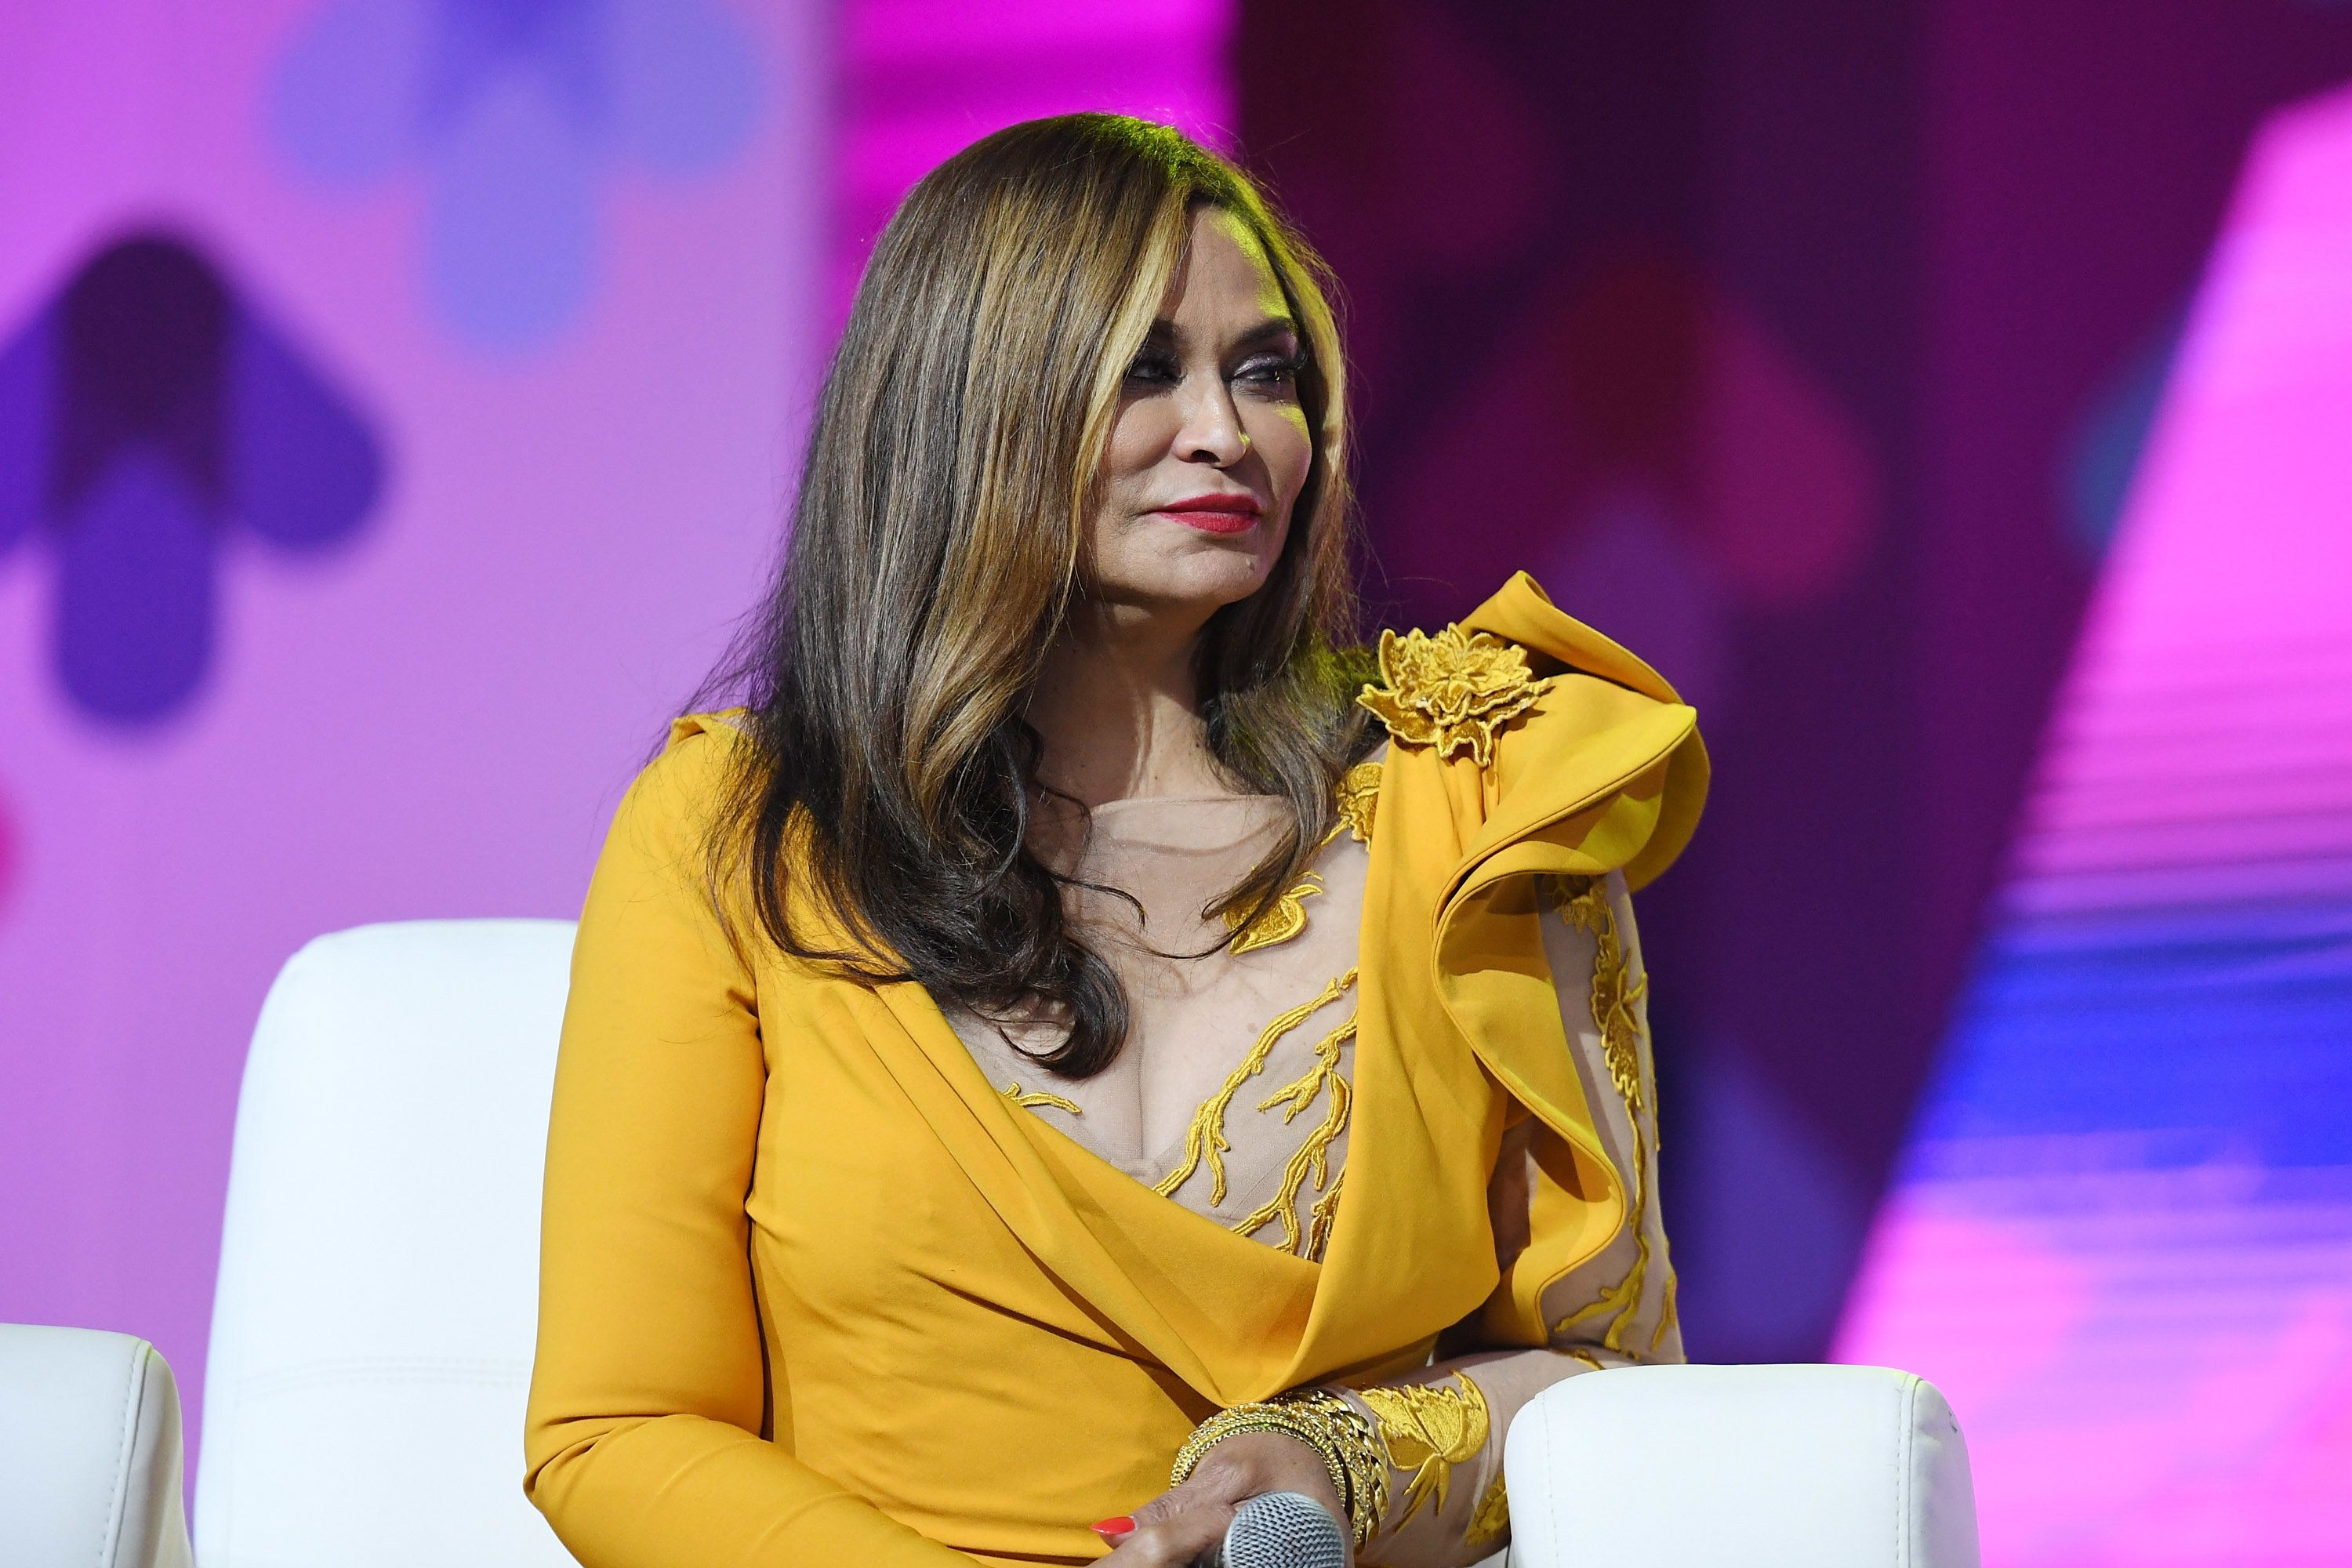 NEW ORLEANS, LA - JUNE 30:  Tina Knowles Lawson speaks onstage at the 2017 ESSENCE Festival presented by Coca-Cola at Ernest N. Morial Convention Center on June 30, 2017 in New Orleans, Louisiana.  (Photo by Paras Griffin/Getty Images for 2017 ESSENCE Festival )